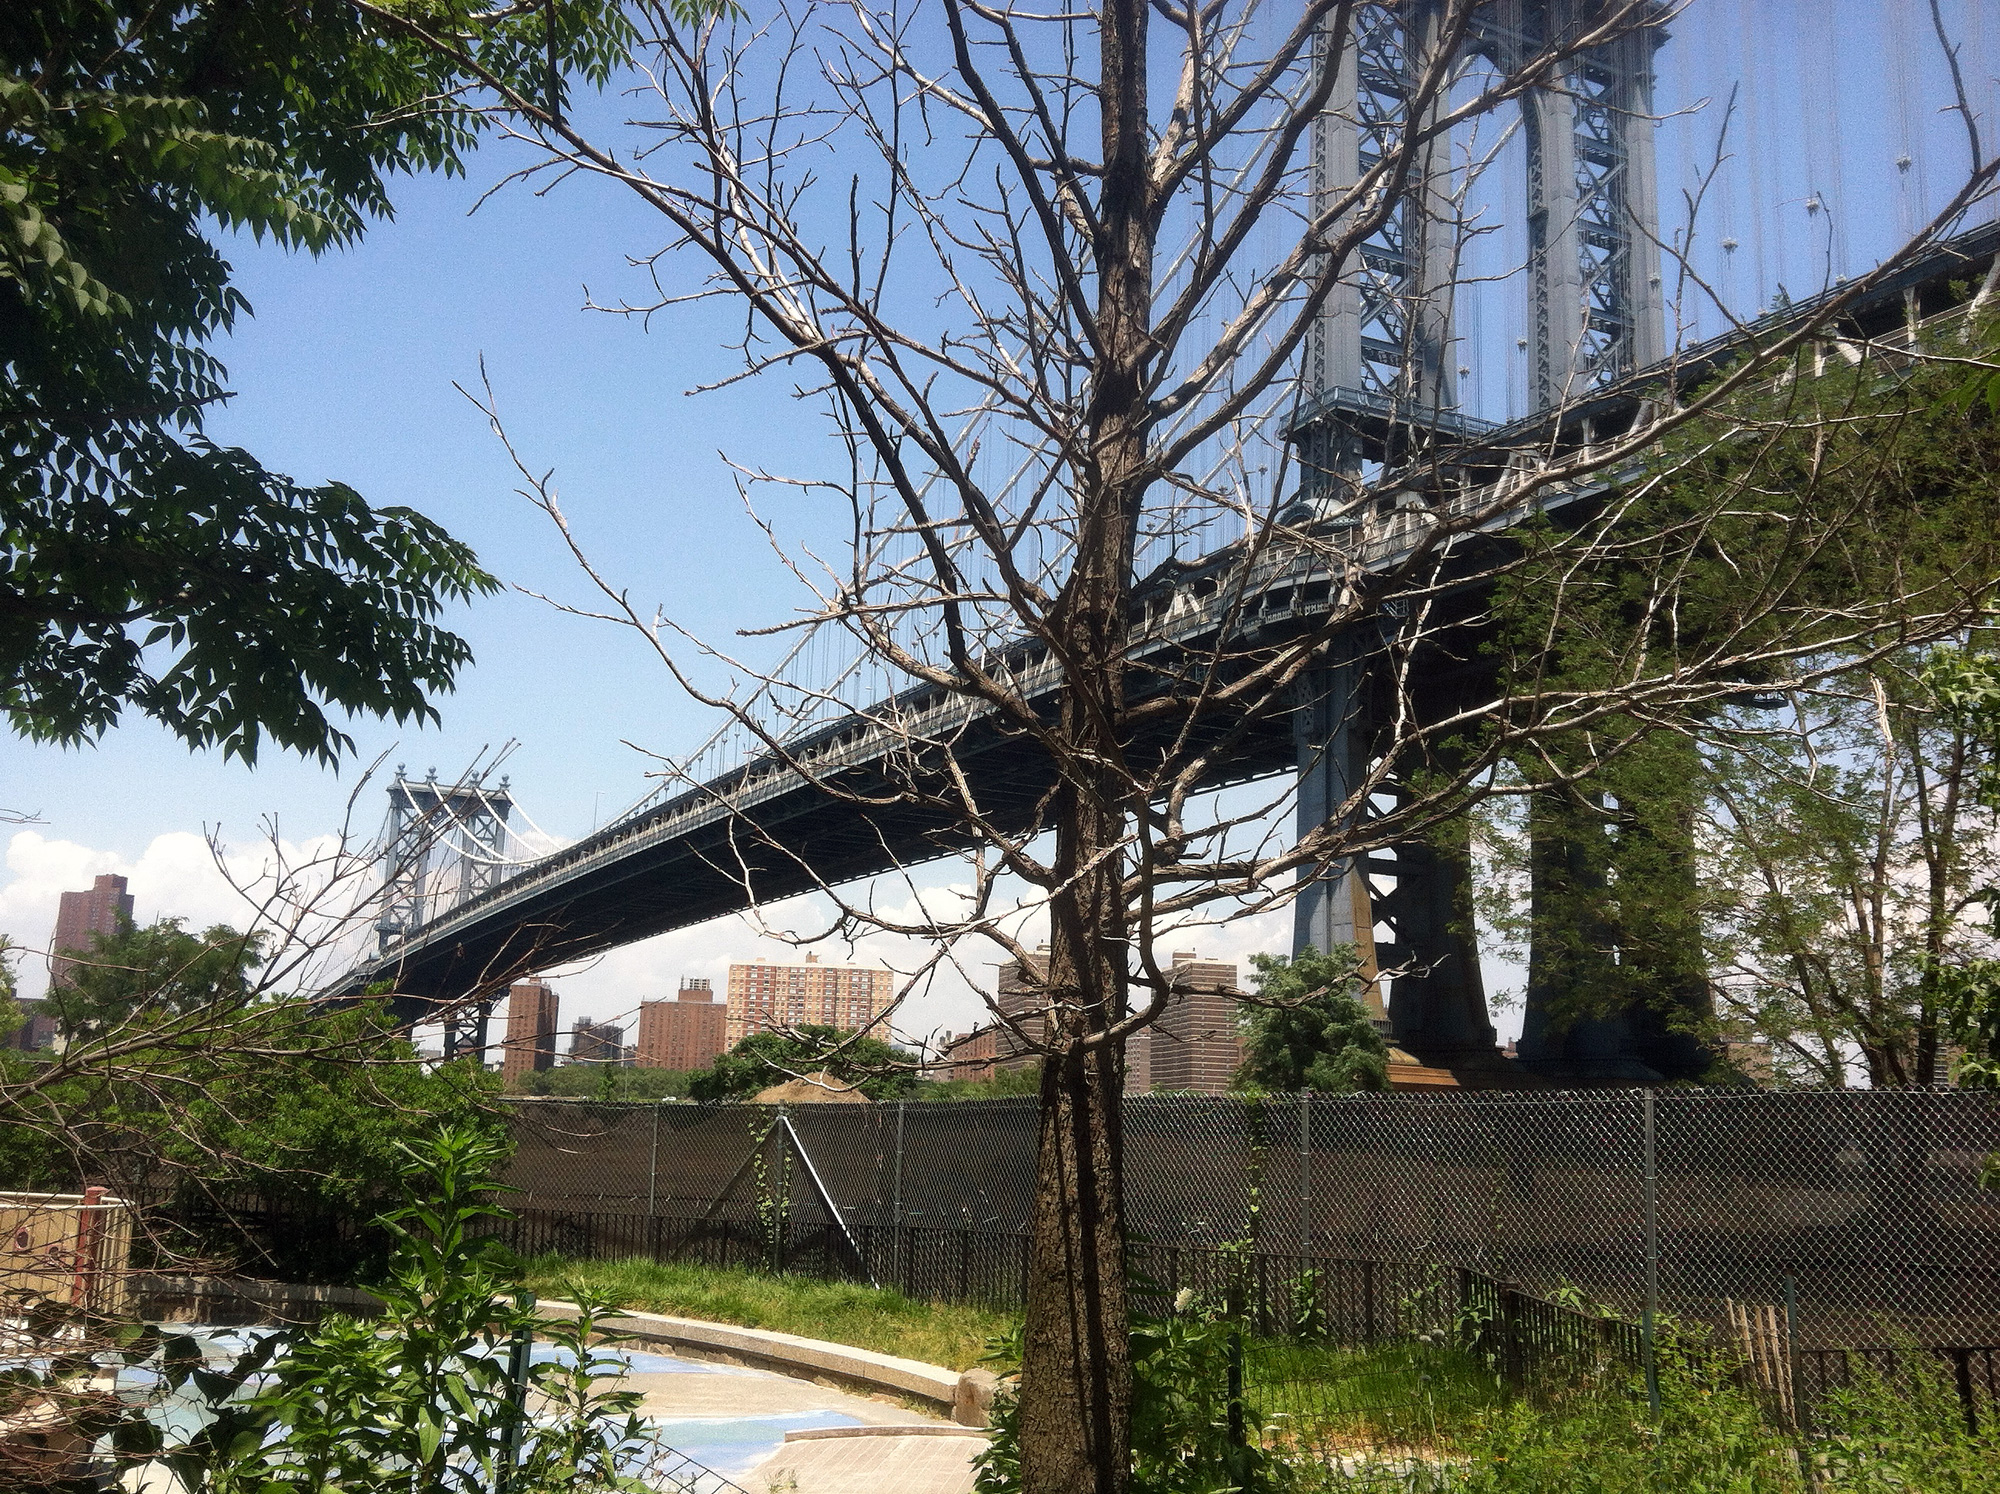 Brooklyn Bridge as photographed from Dumbo